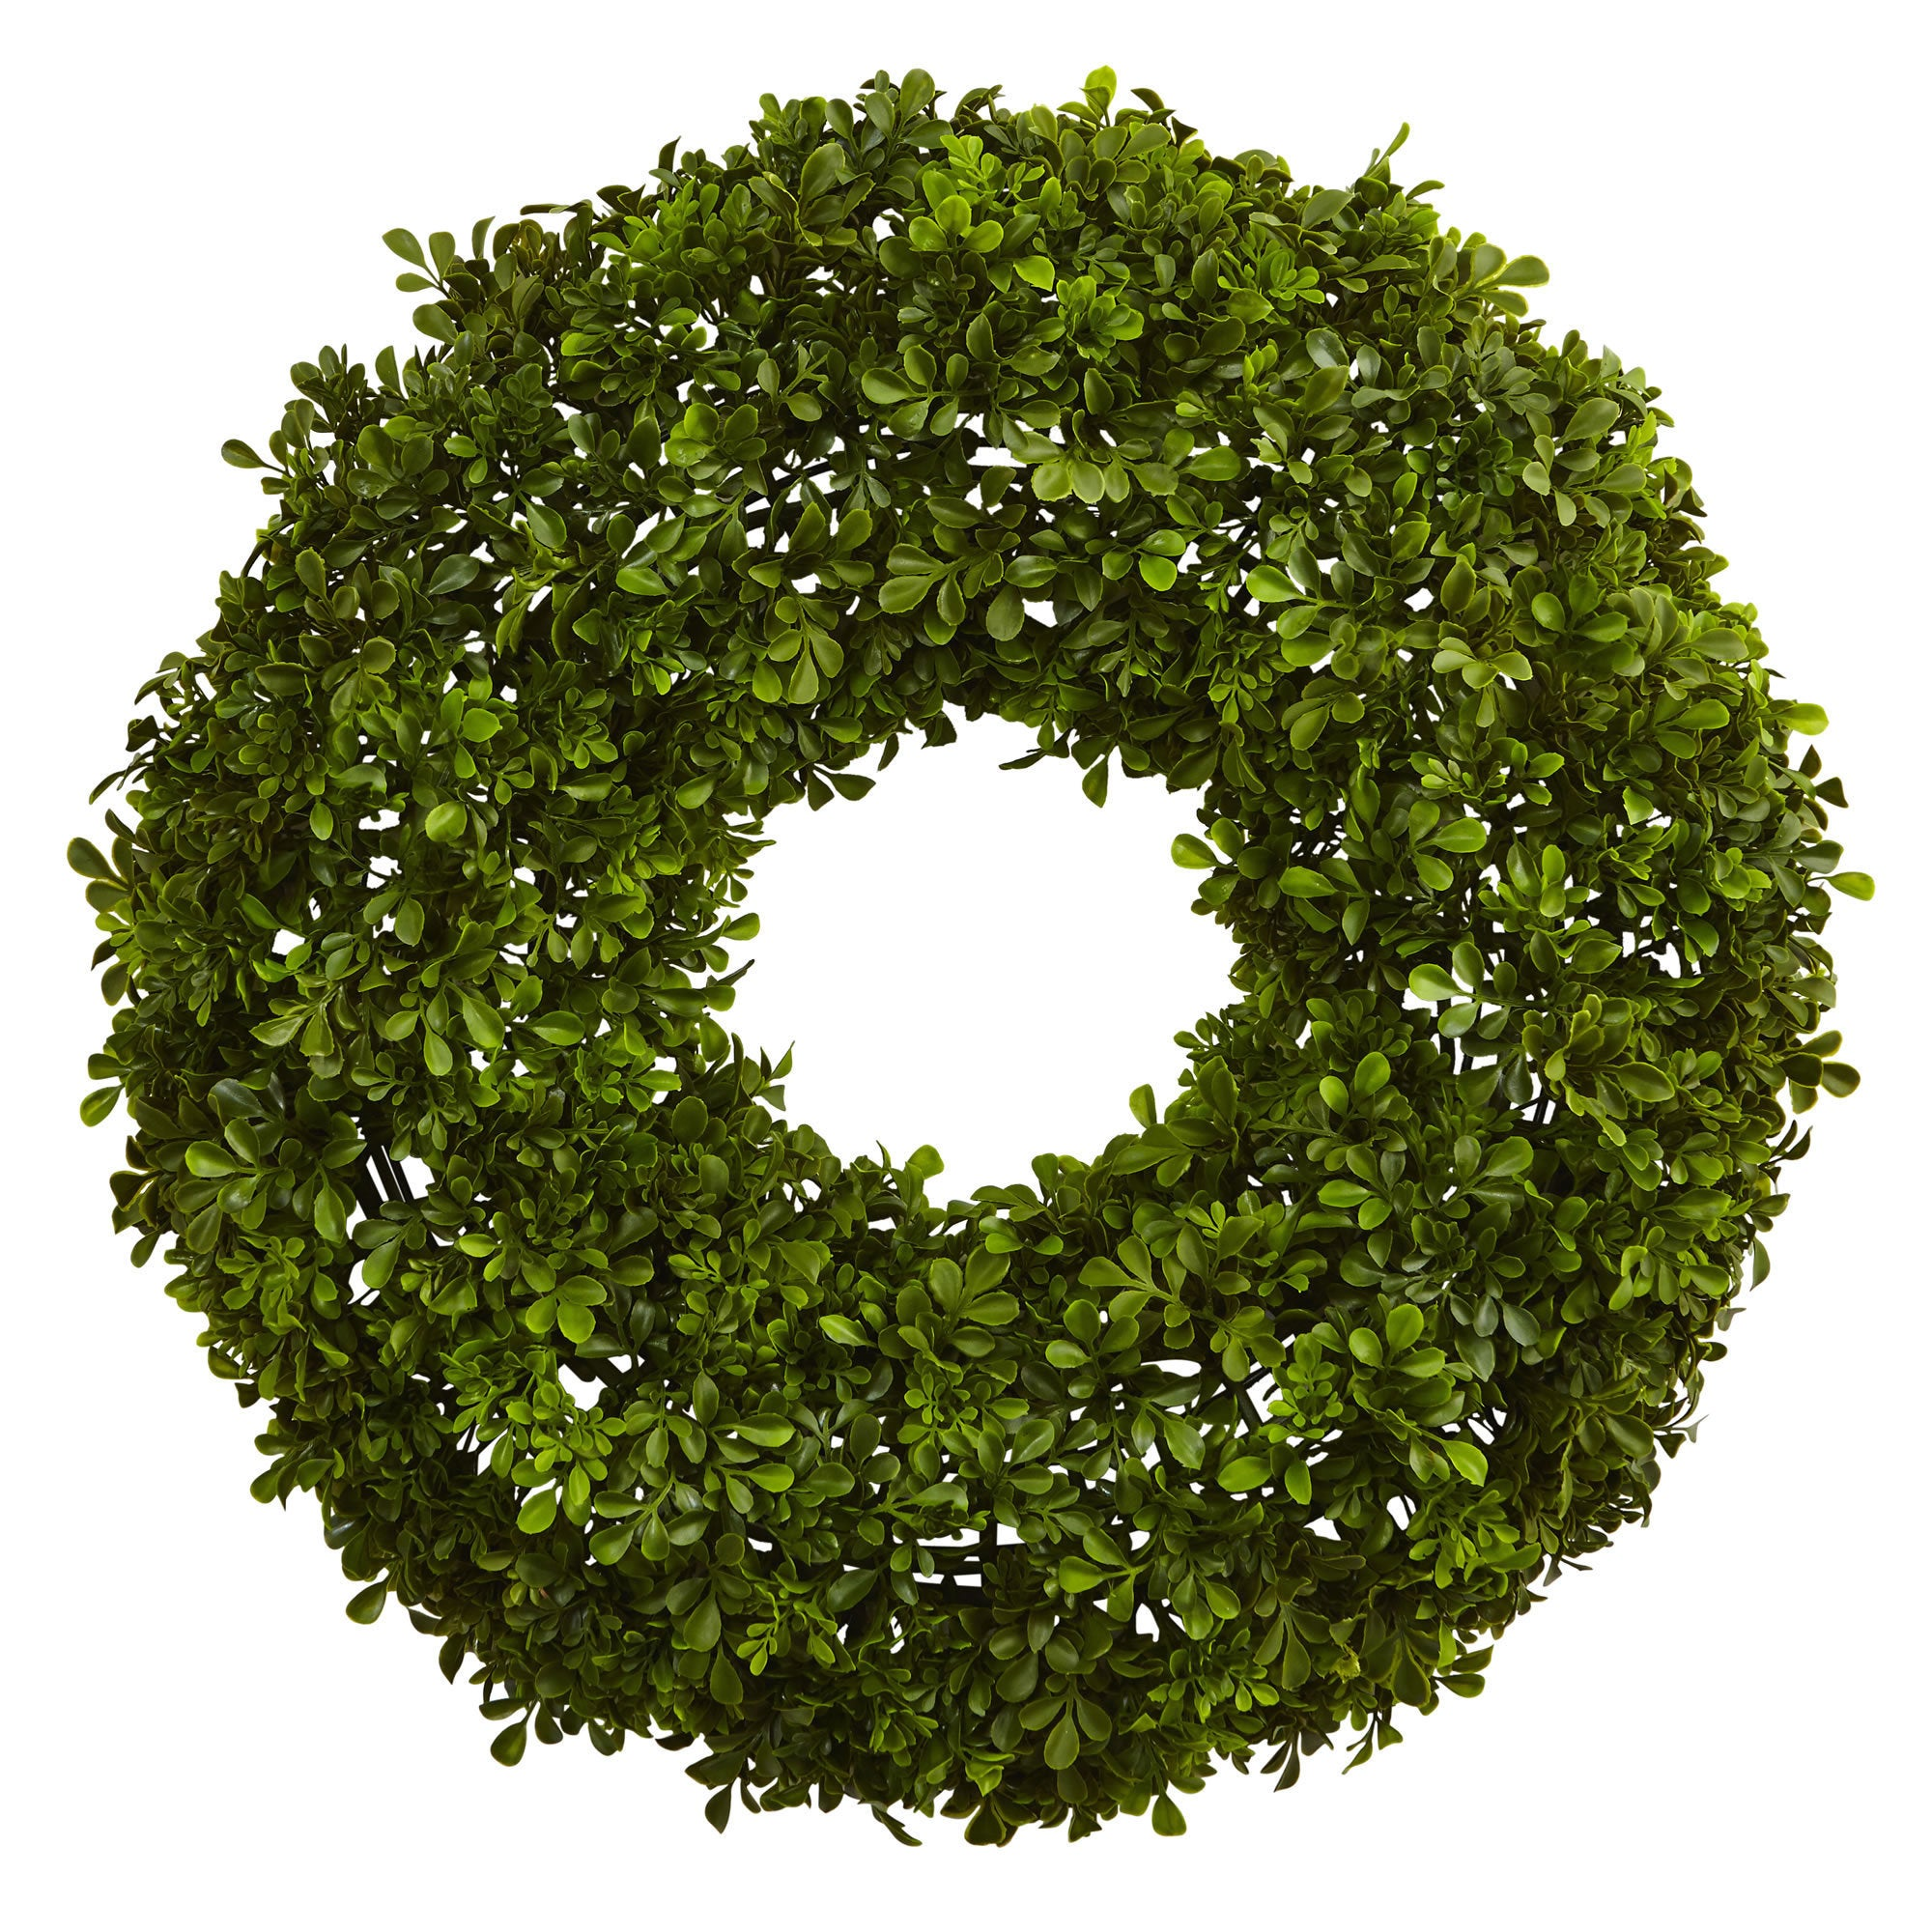 Nearly Natural 22-inch Boxwood Wreath (Wreaths), Green, S...